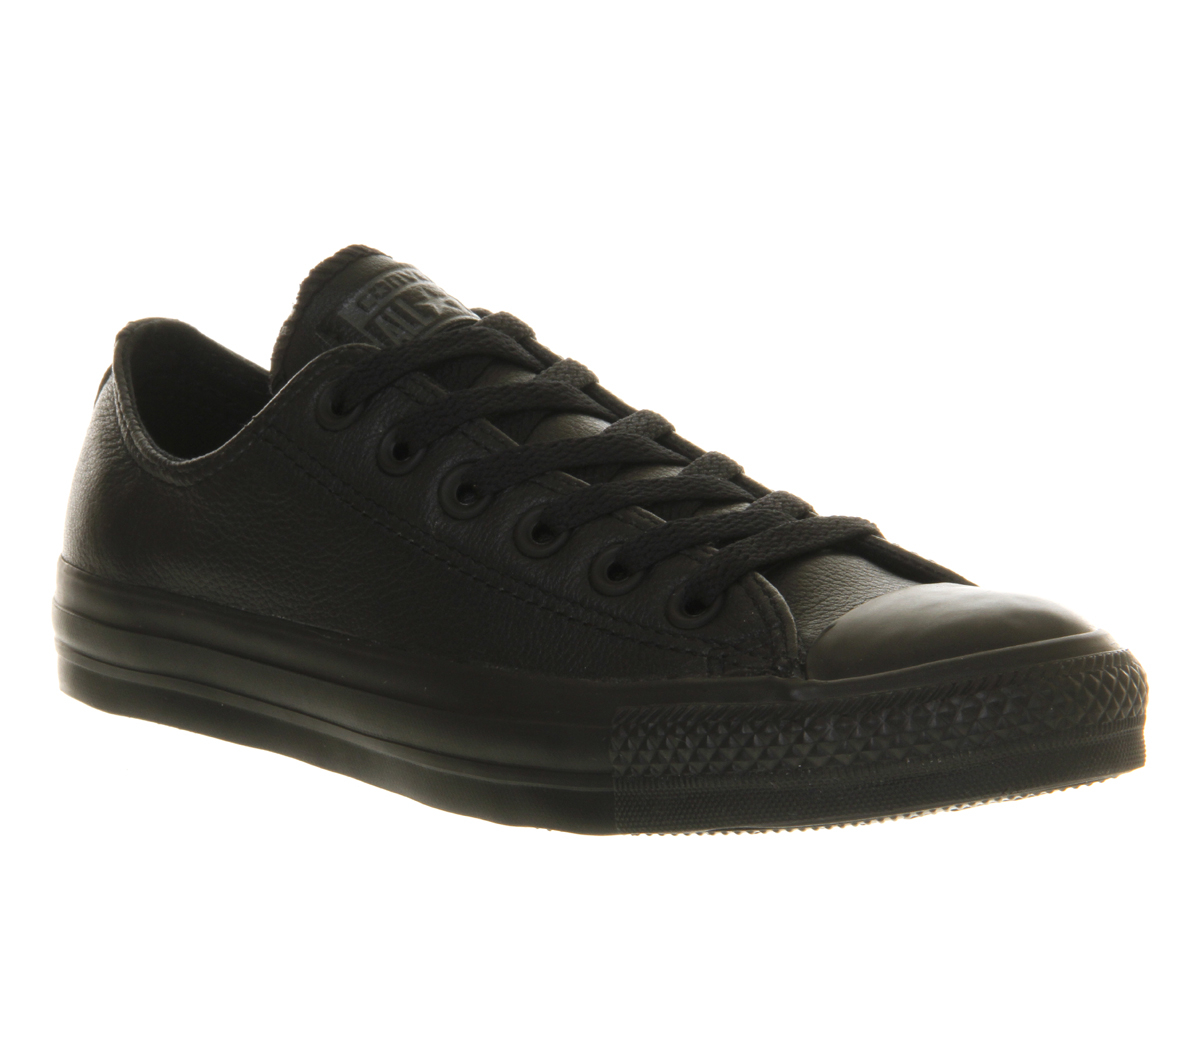 converse all low leather in black for lyst